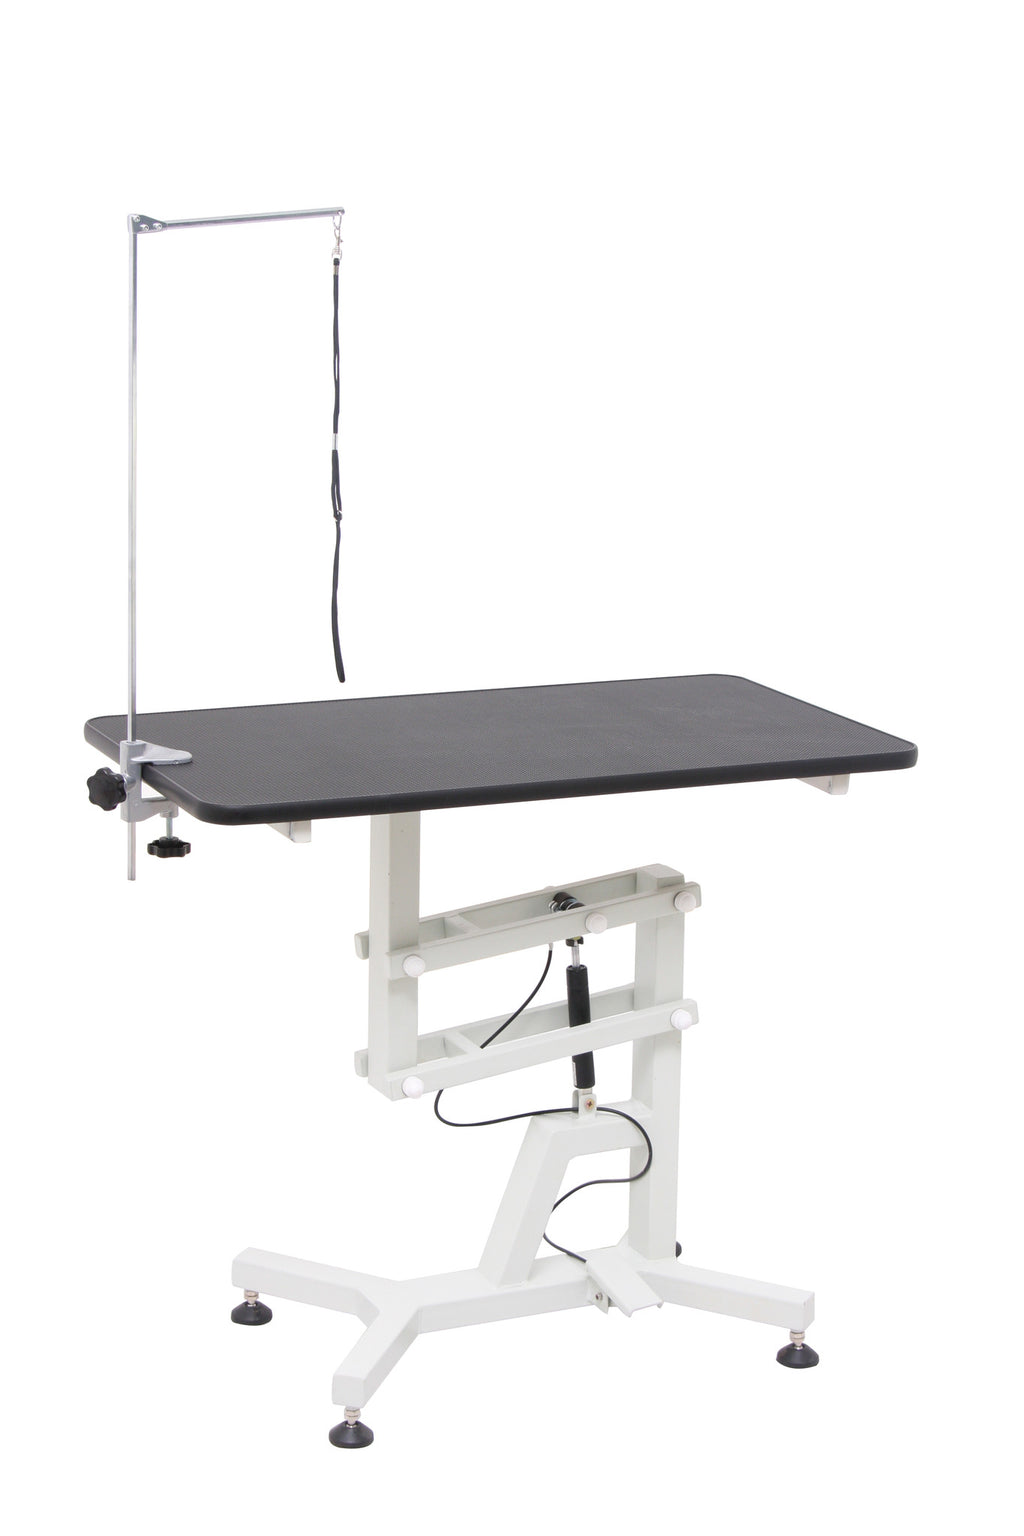 Rectangular Airlift Grooming Table